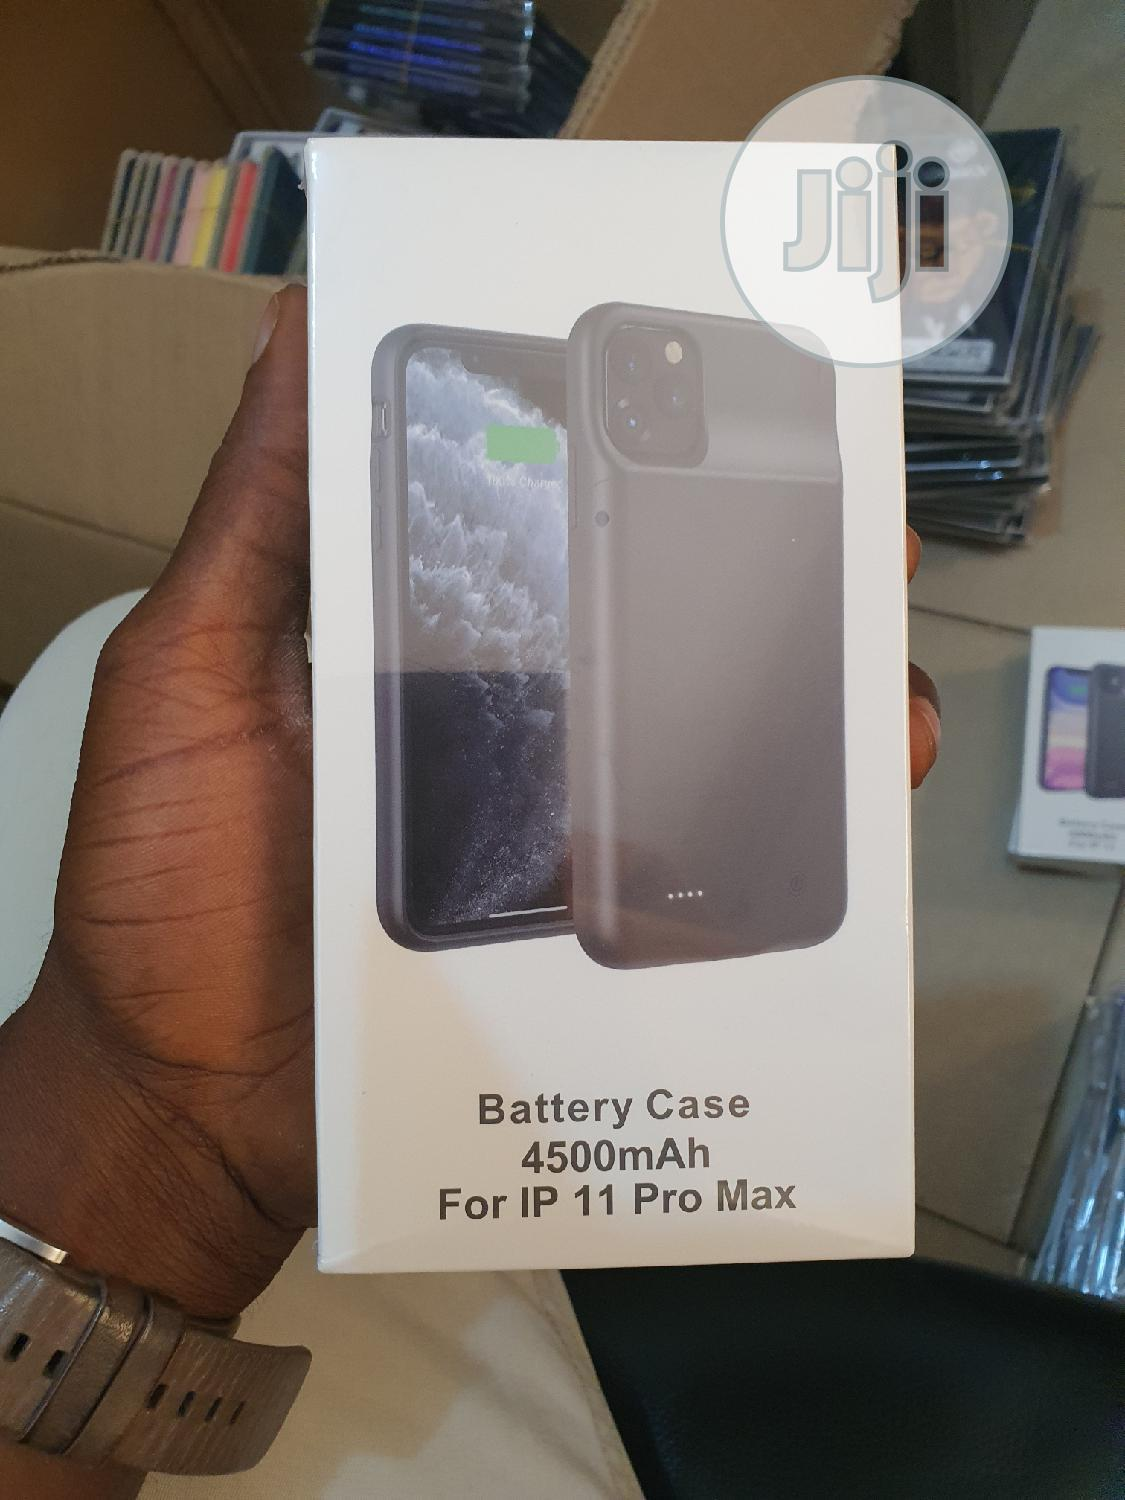 Battery Case For iPhone 11 Pro Max 4500mah   Accessories for Mobile Phones & Tablets for sale in Ikeja, Lagos State, Nigeria